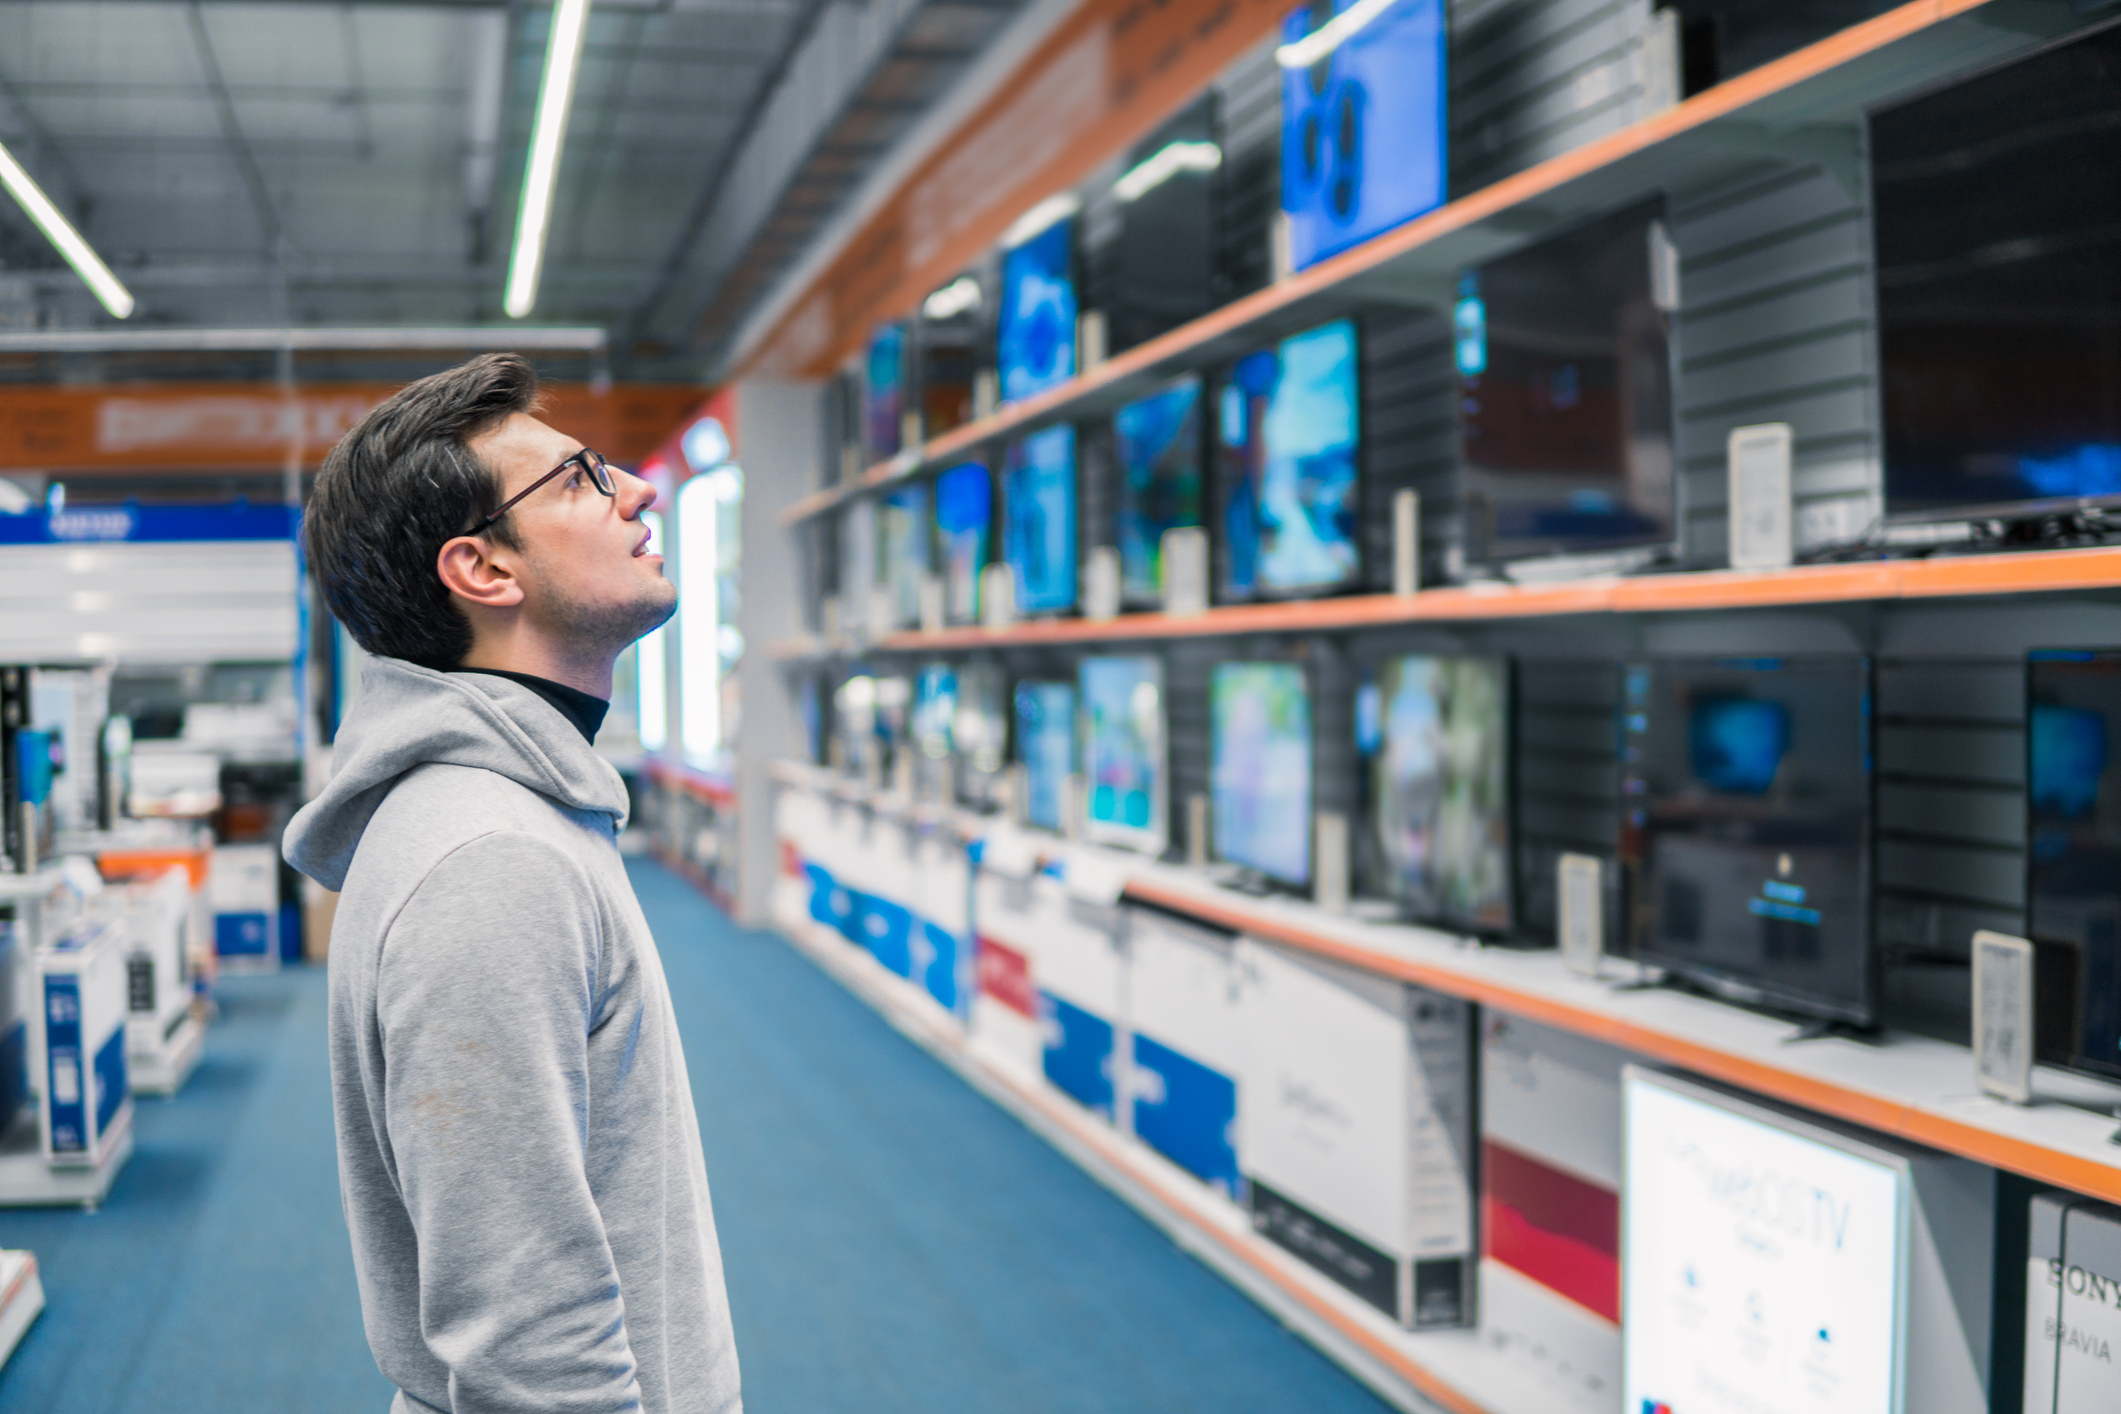 man in store looking at tvs